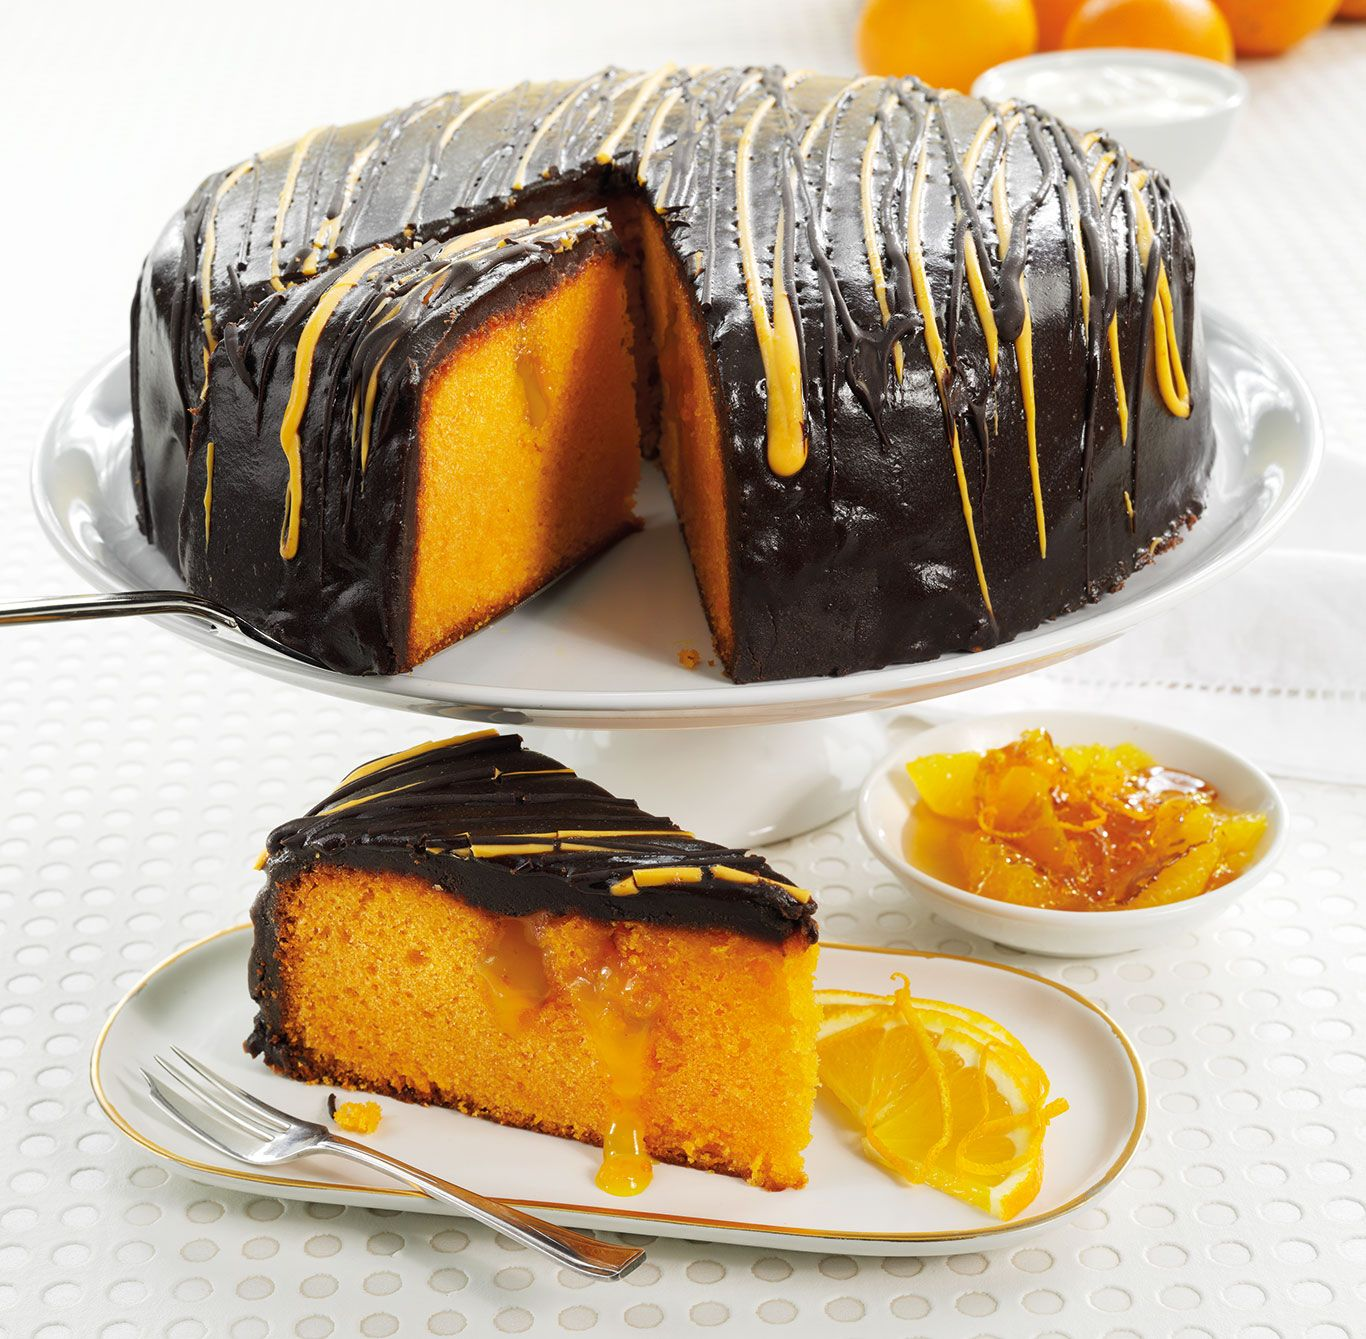 A Moist And Gooey Orange Sponge With Pockets Of Sticky